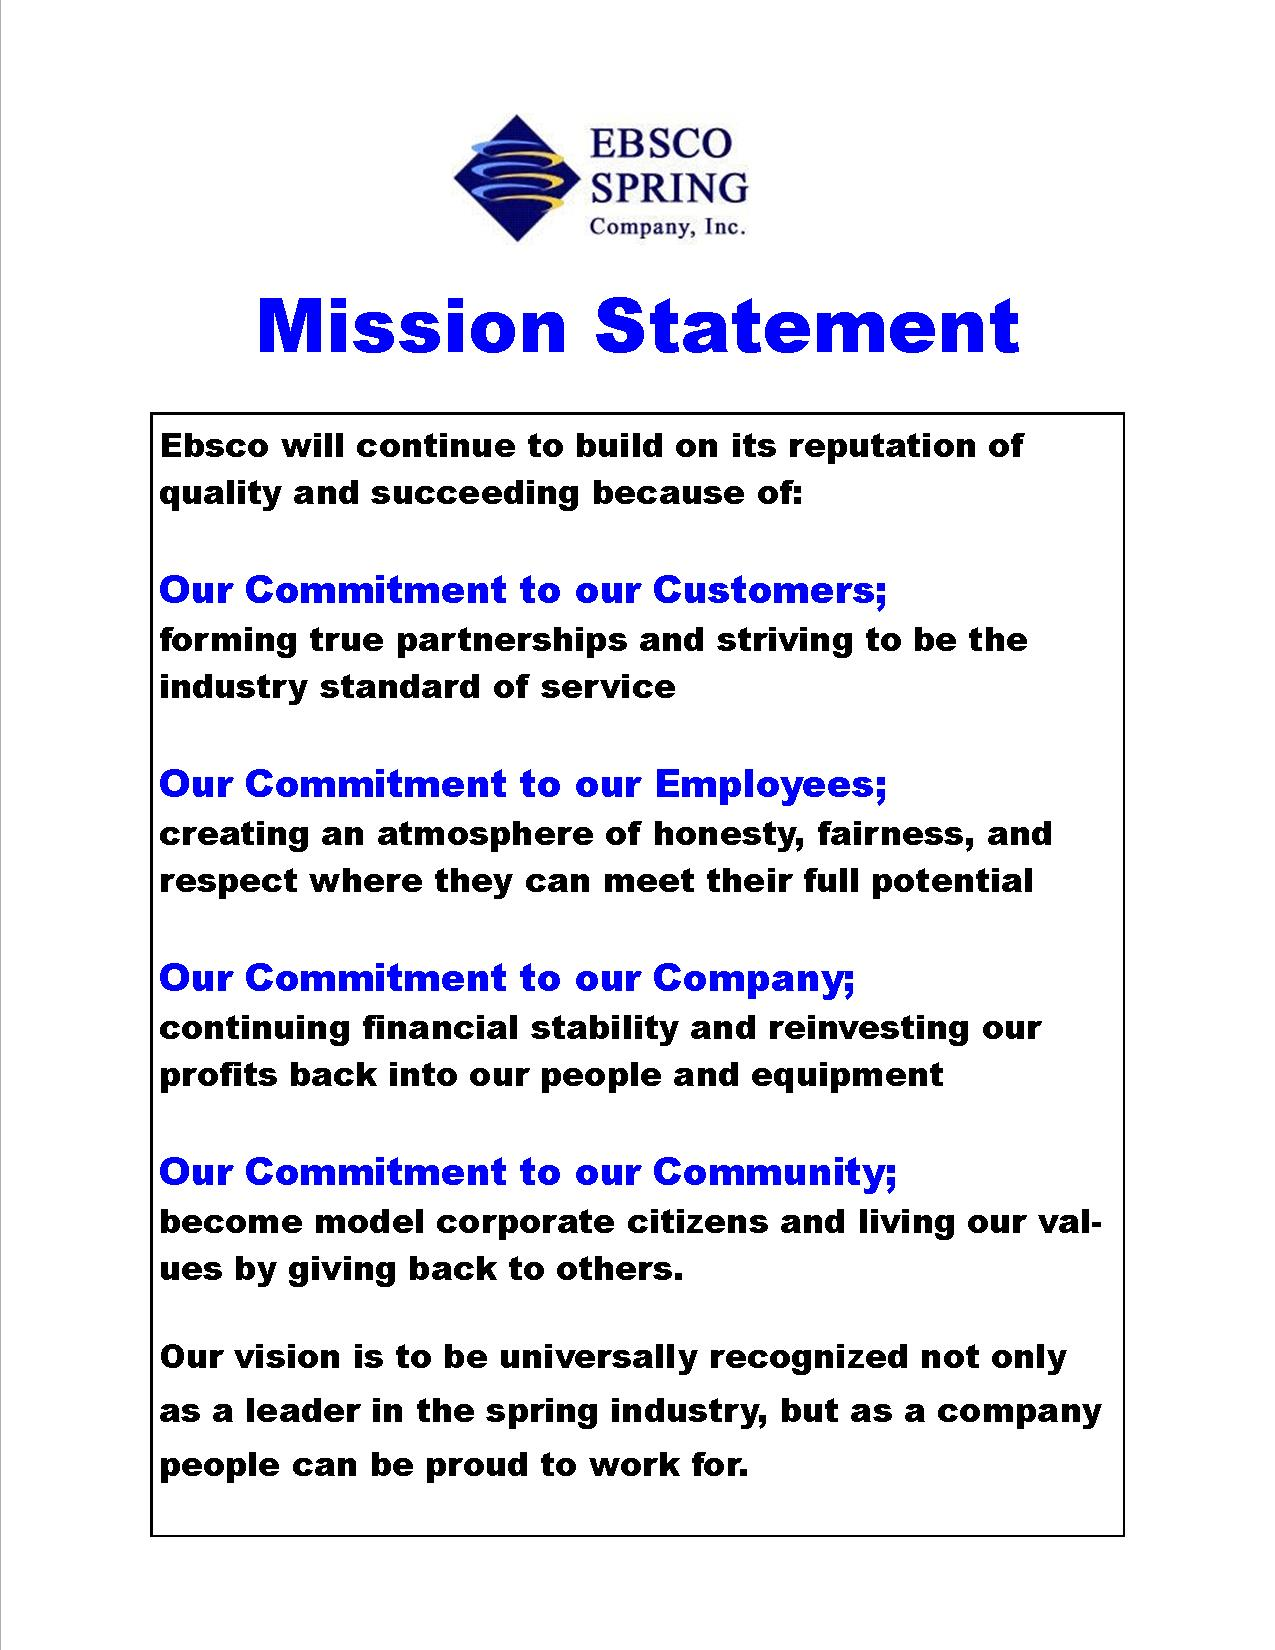 MISSION STATEMENTS: IMPORTANCE, CHALLENGE, AND RECOMMENDATIONS FOR  DEVELOPMENT (Abridged) Source: Business U2026